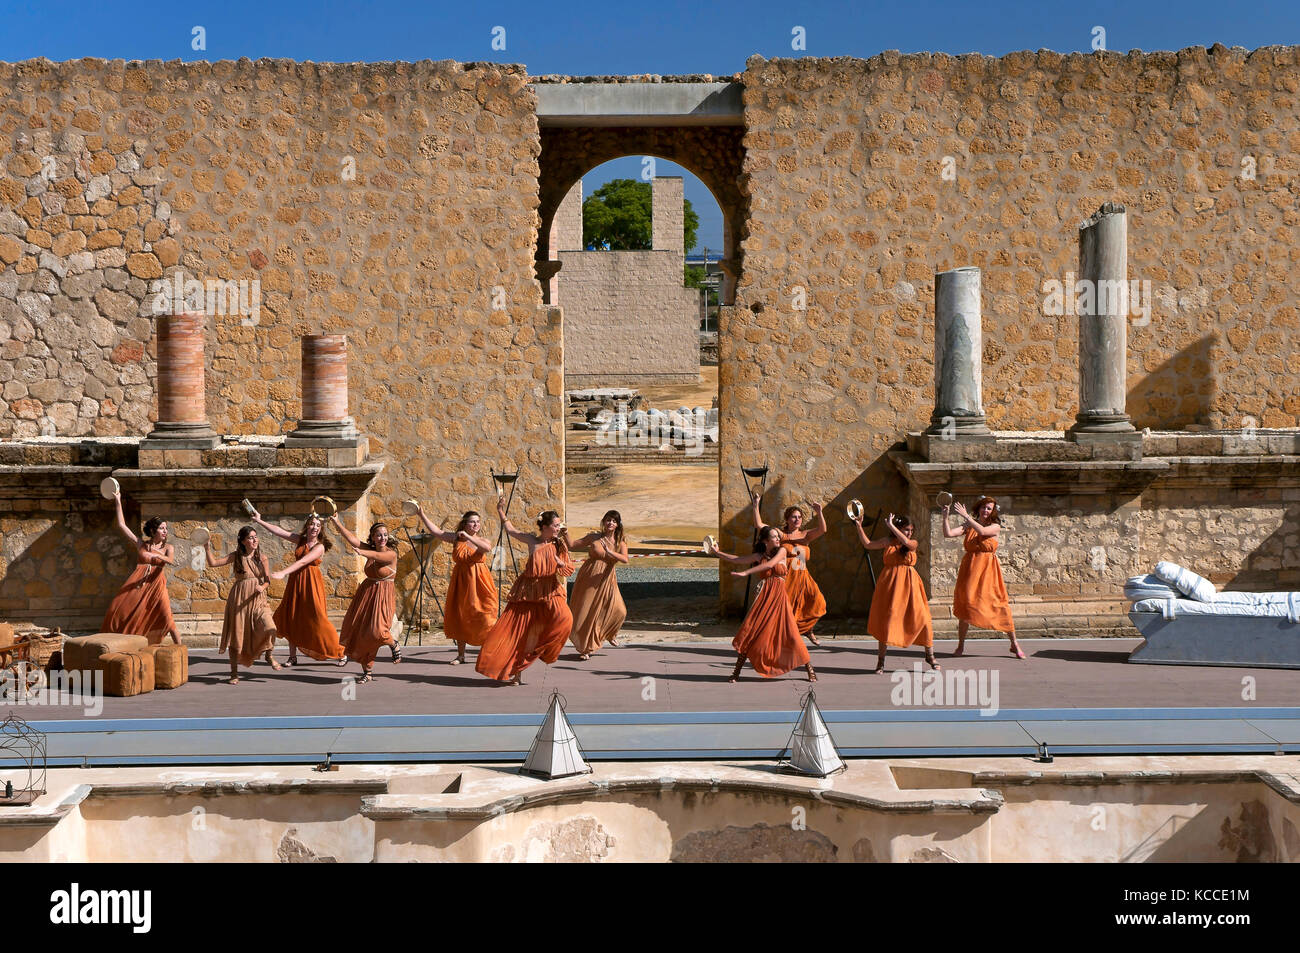 Roman ruins of Italica -theater and spectacle, Santiponce, Seville province, Region of Andalusia, Spain, Europe - Stock Image